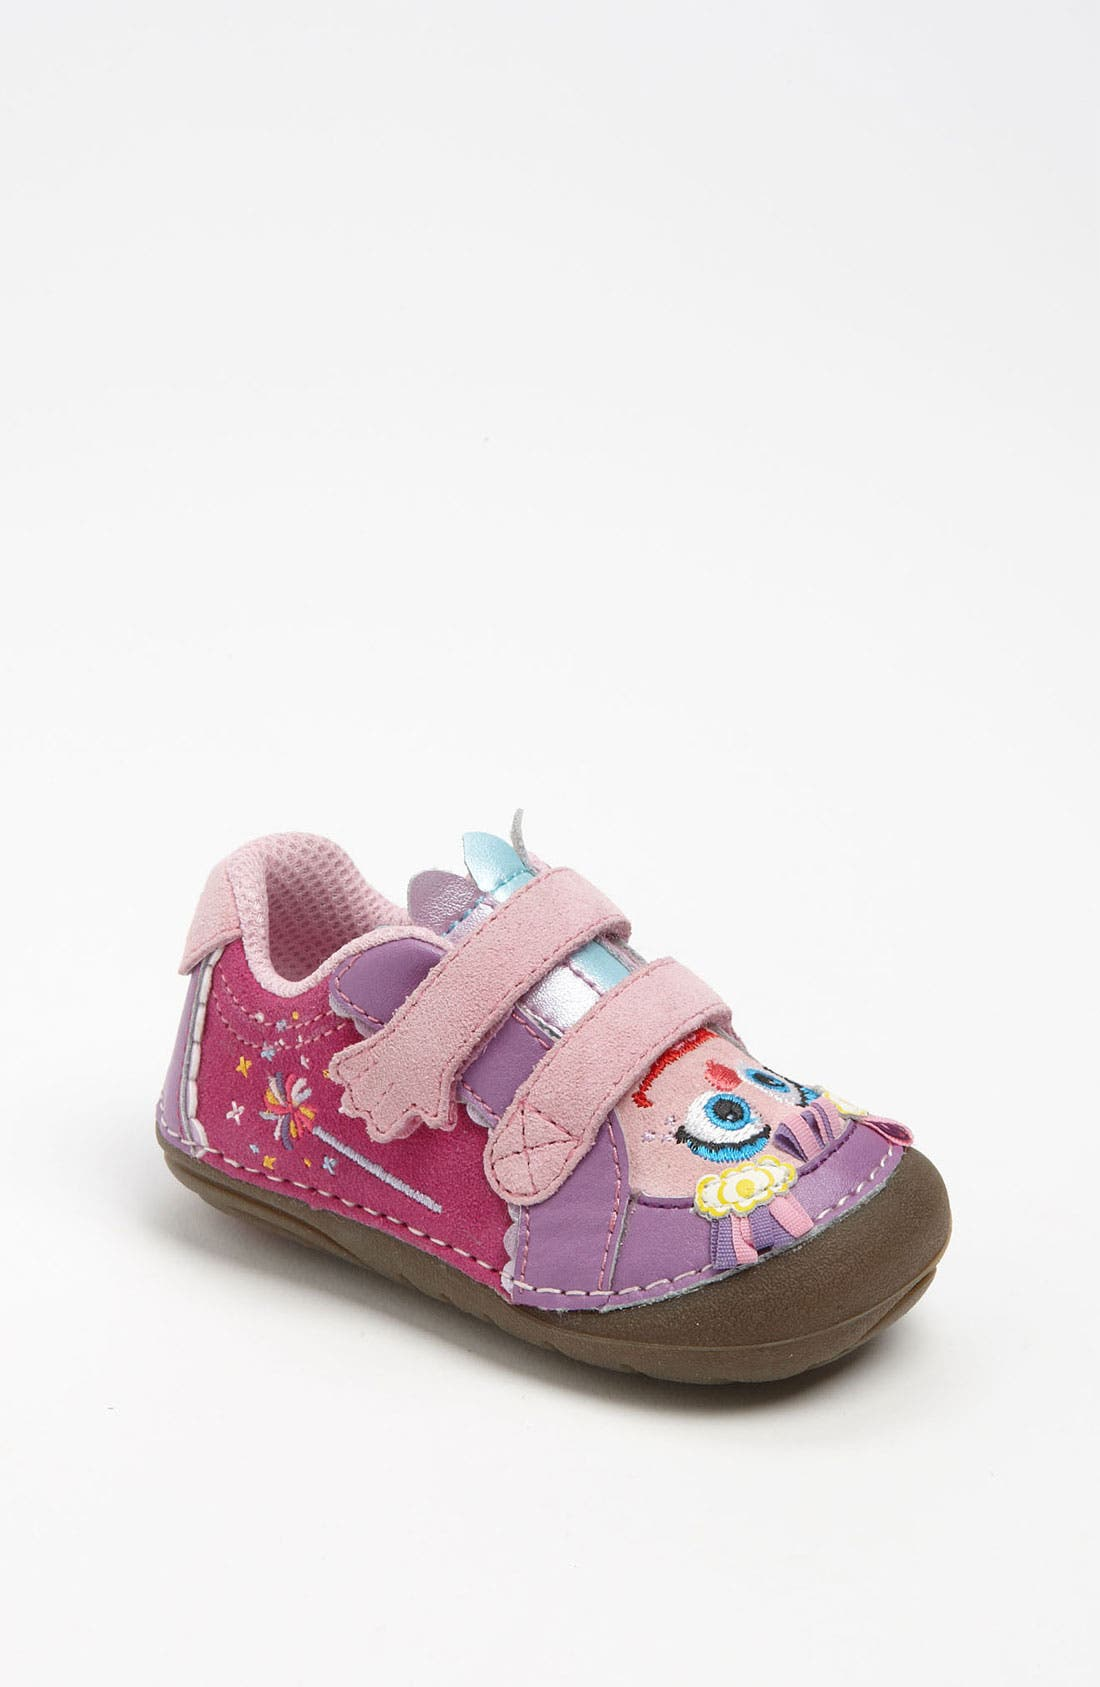 Alternate Image 1 Selected - Stride Rite 'Sesame Street® - Abby Cadaby' Sneaker (Baby & Walker)